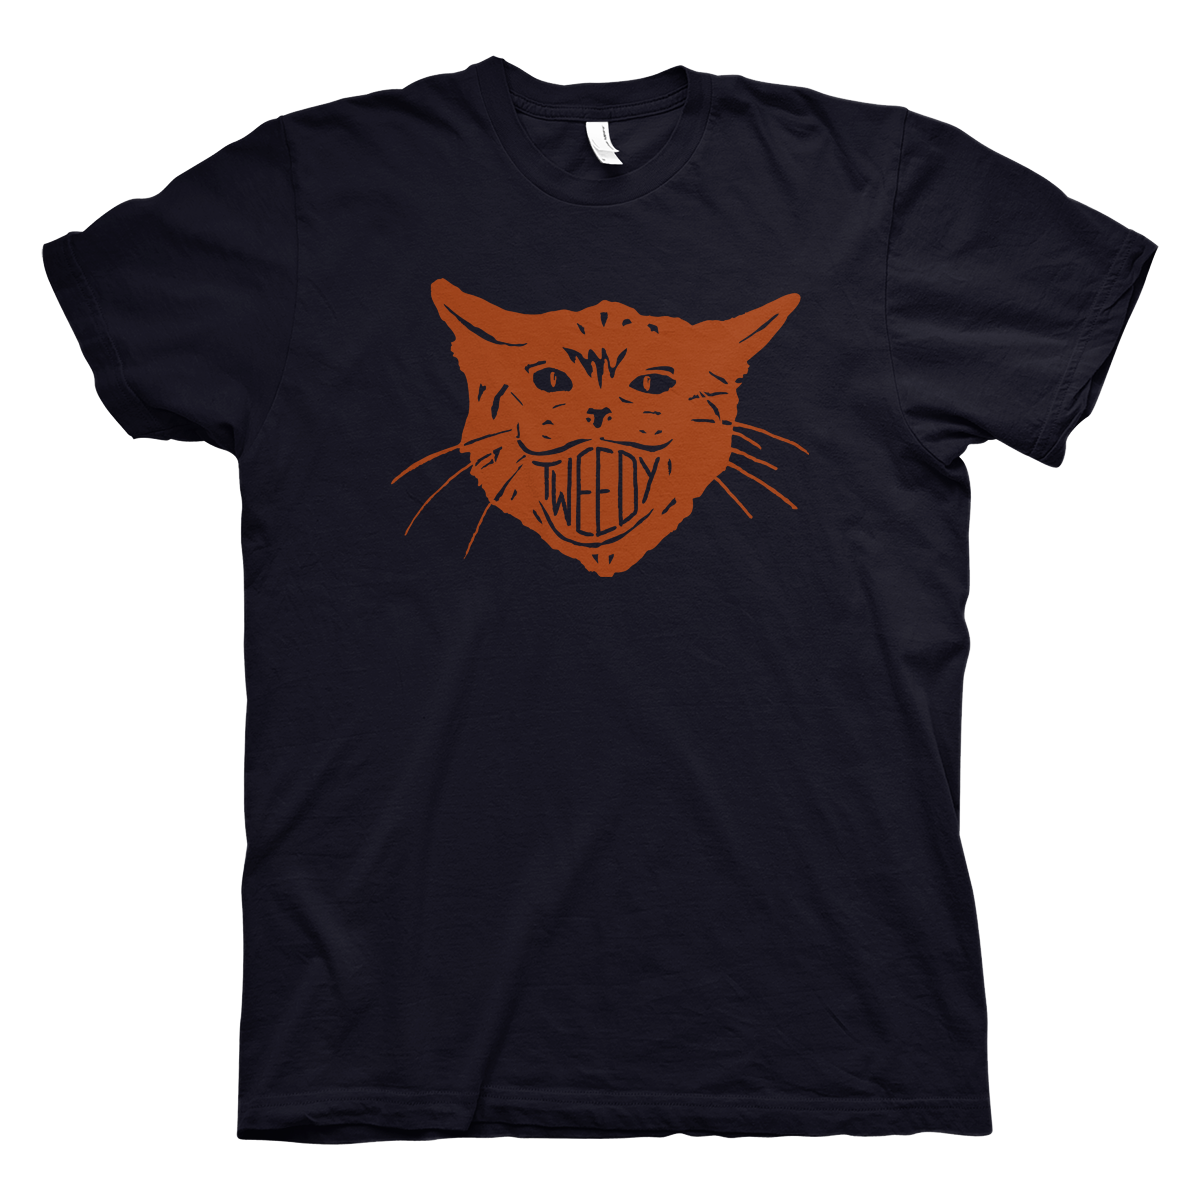 Tweedy Cat T-shirt